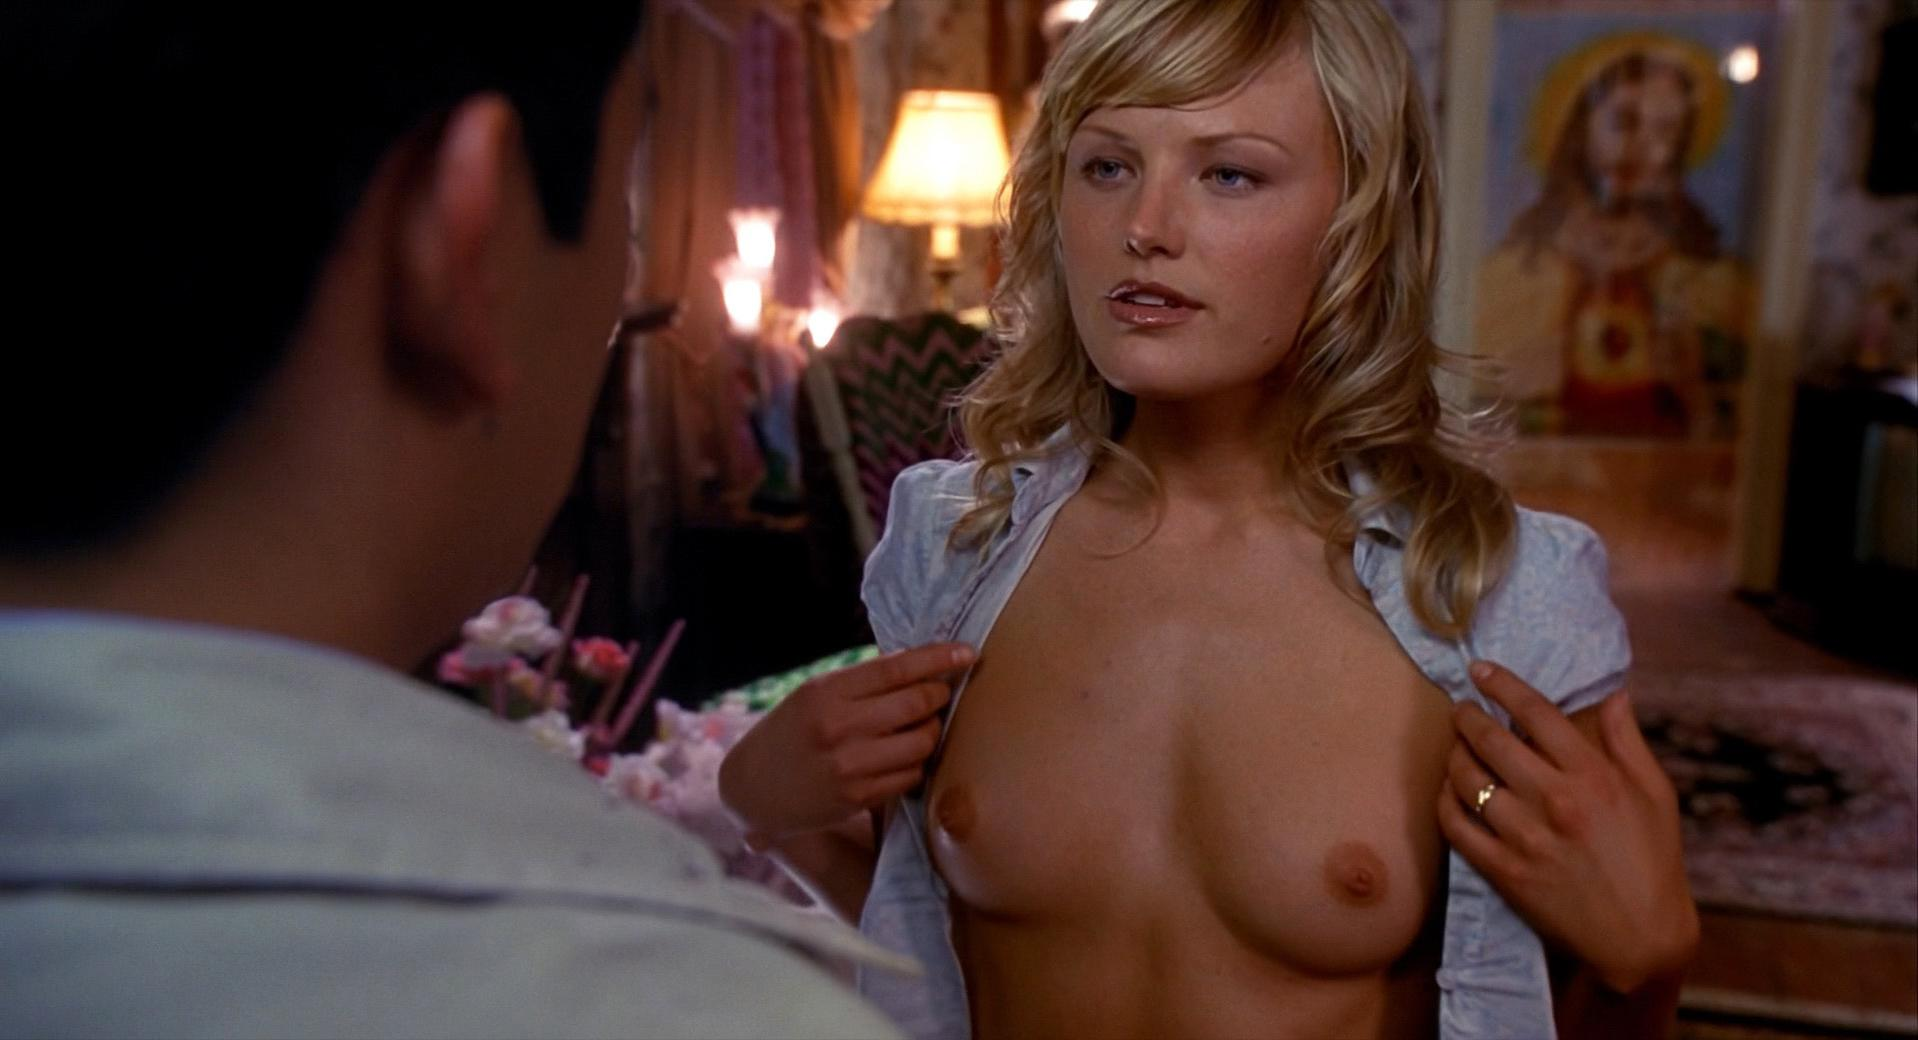 Malin Akerman nude - Harold and Kumar (2004)